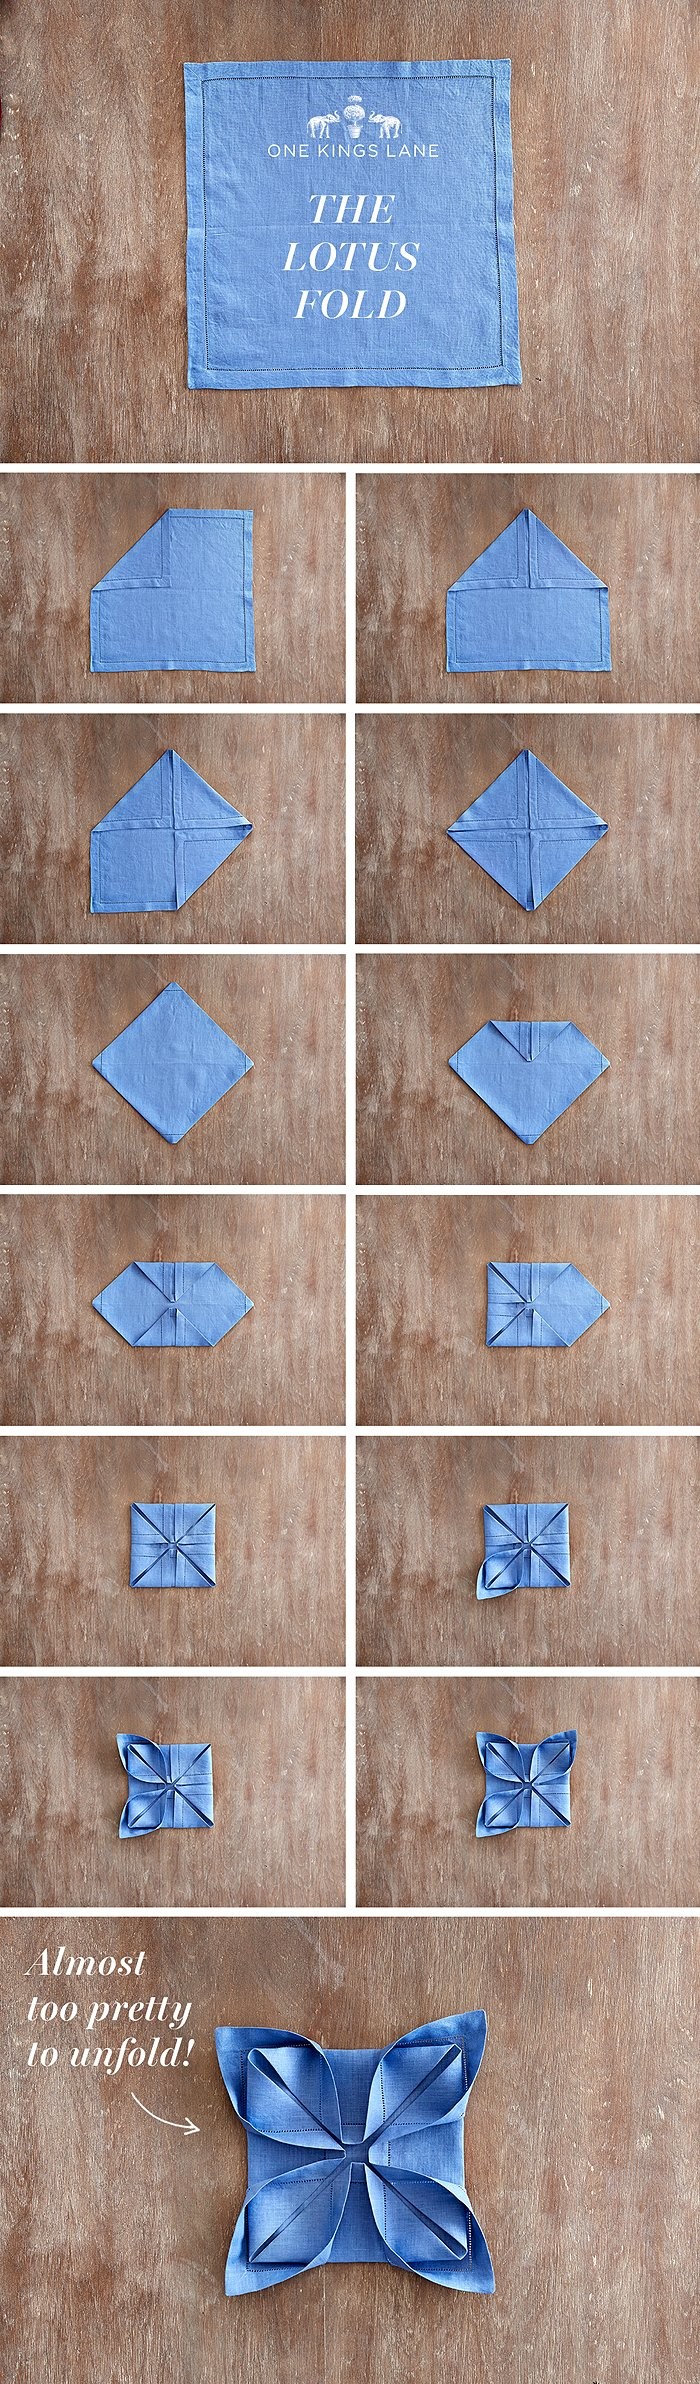 Napkin Pin_Lotus Fold (2)